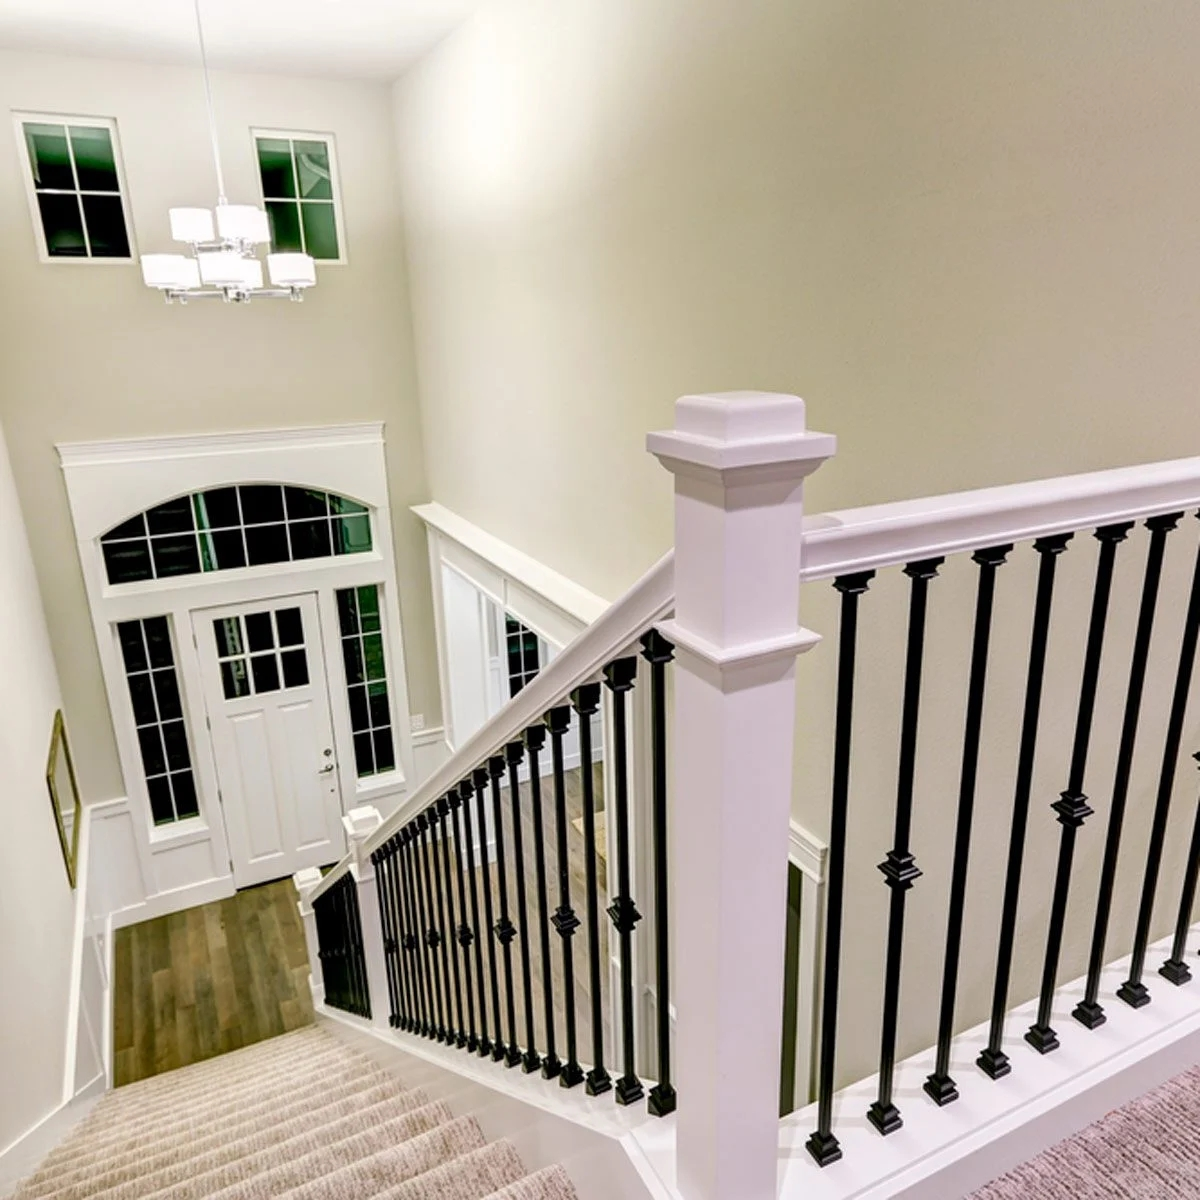 10 Ways To Freshen Up Outdated Banisters Family Handyman | Wood Handrail With Iron Balusters | Stairway | Wooden | Copper | Cast Iron | Landing